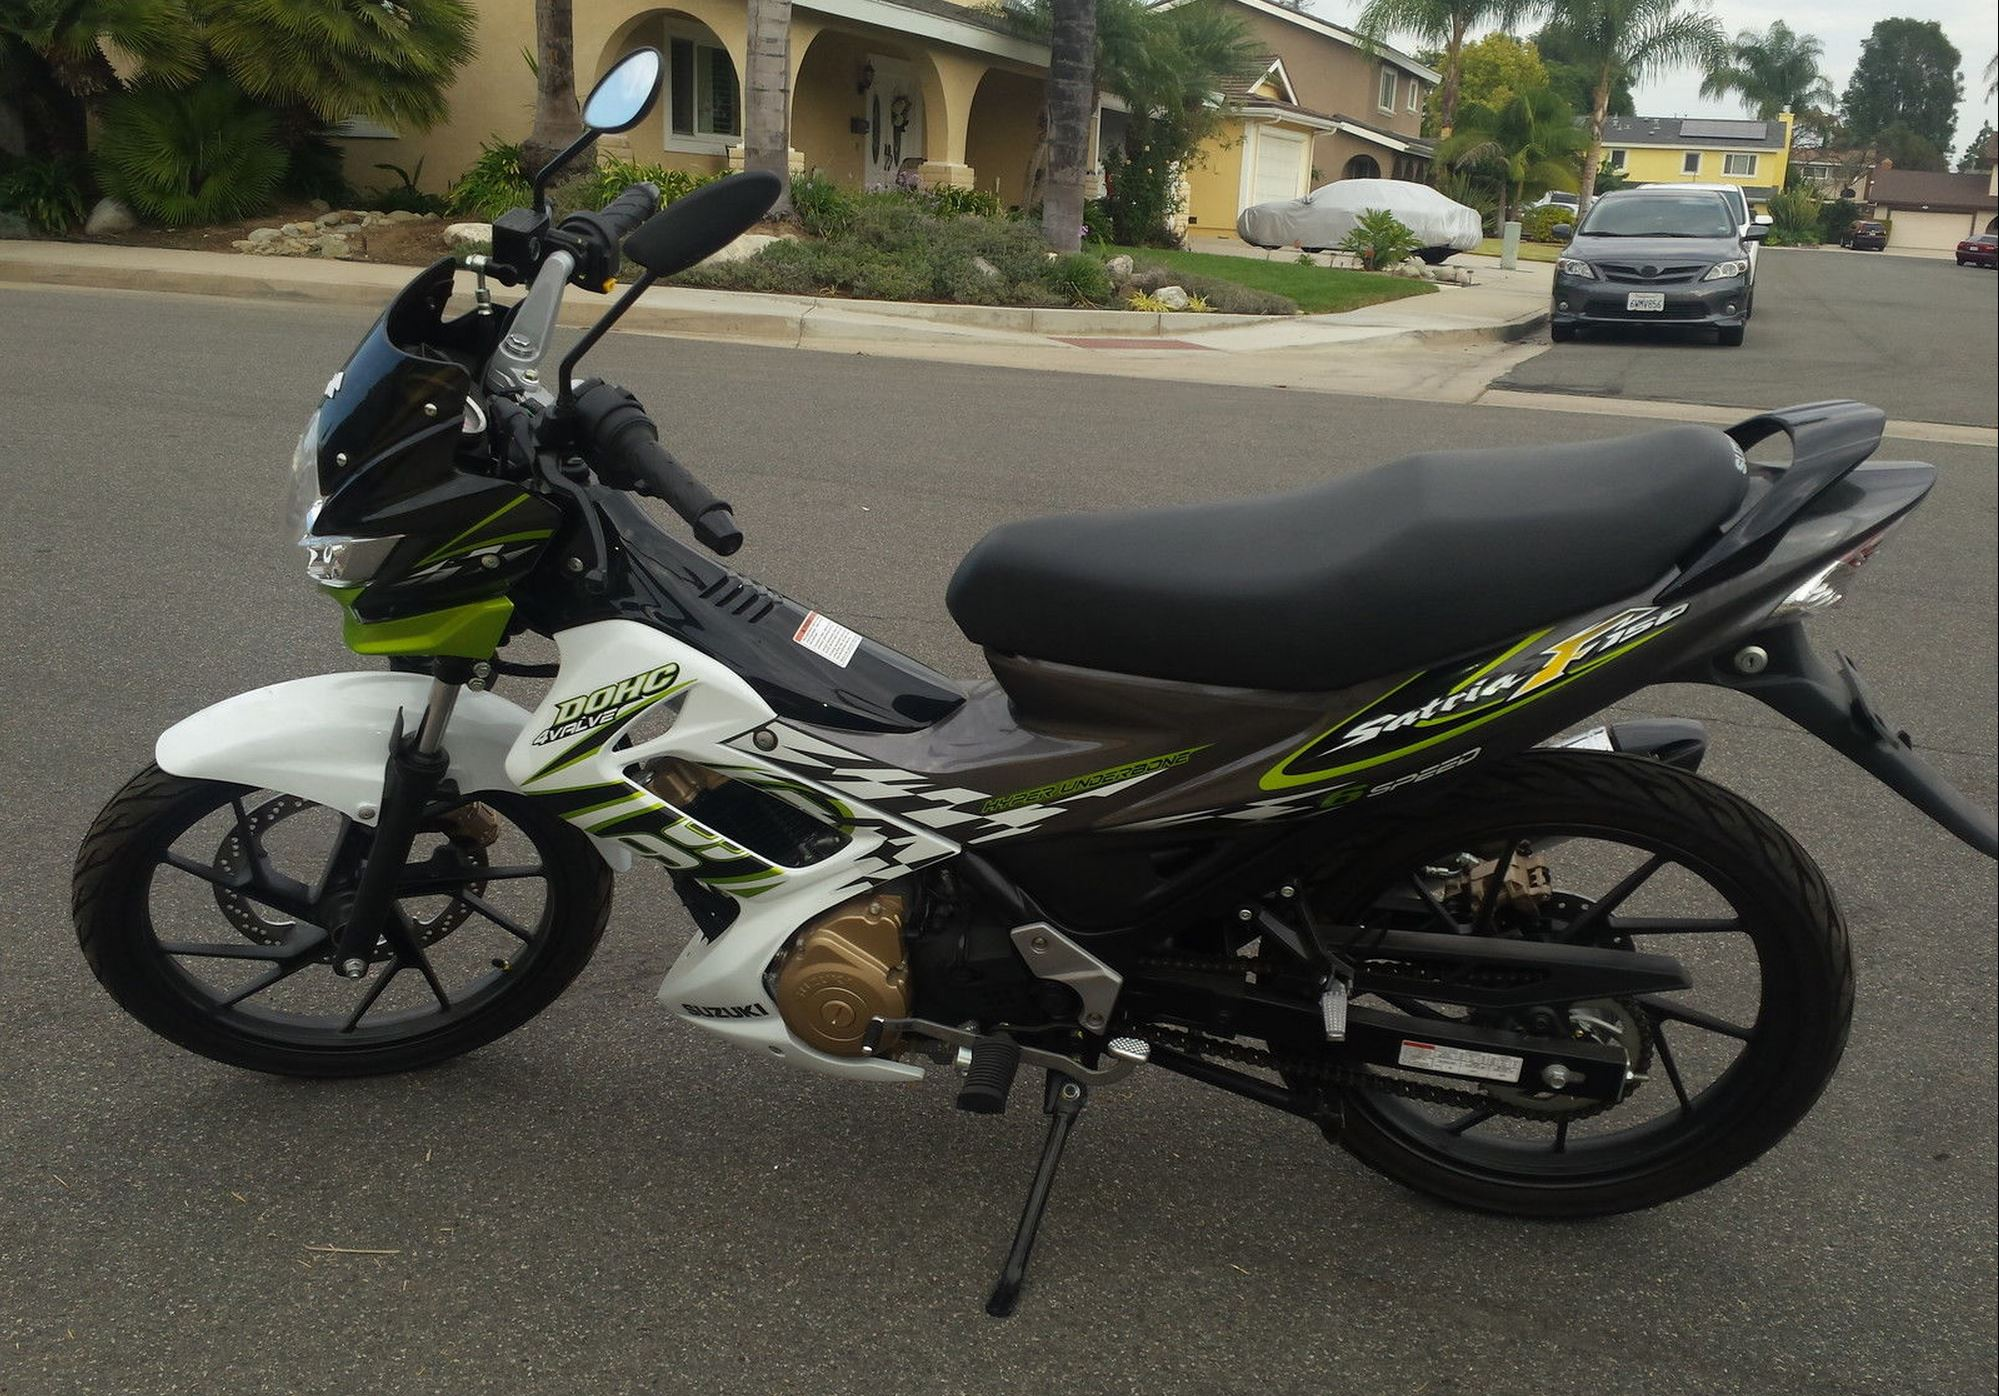 Suzuki Satria F150 Left Side Bike Urious All New